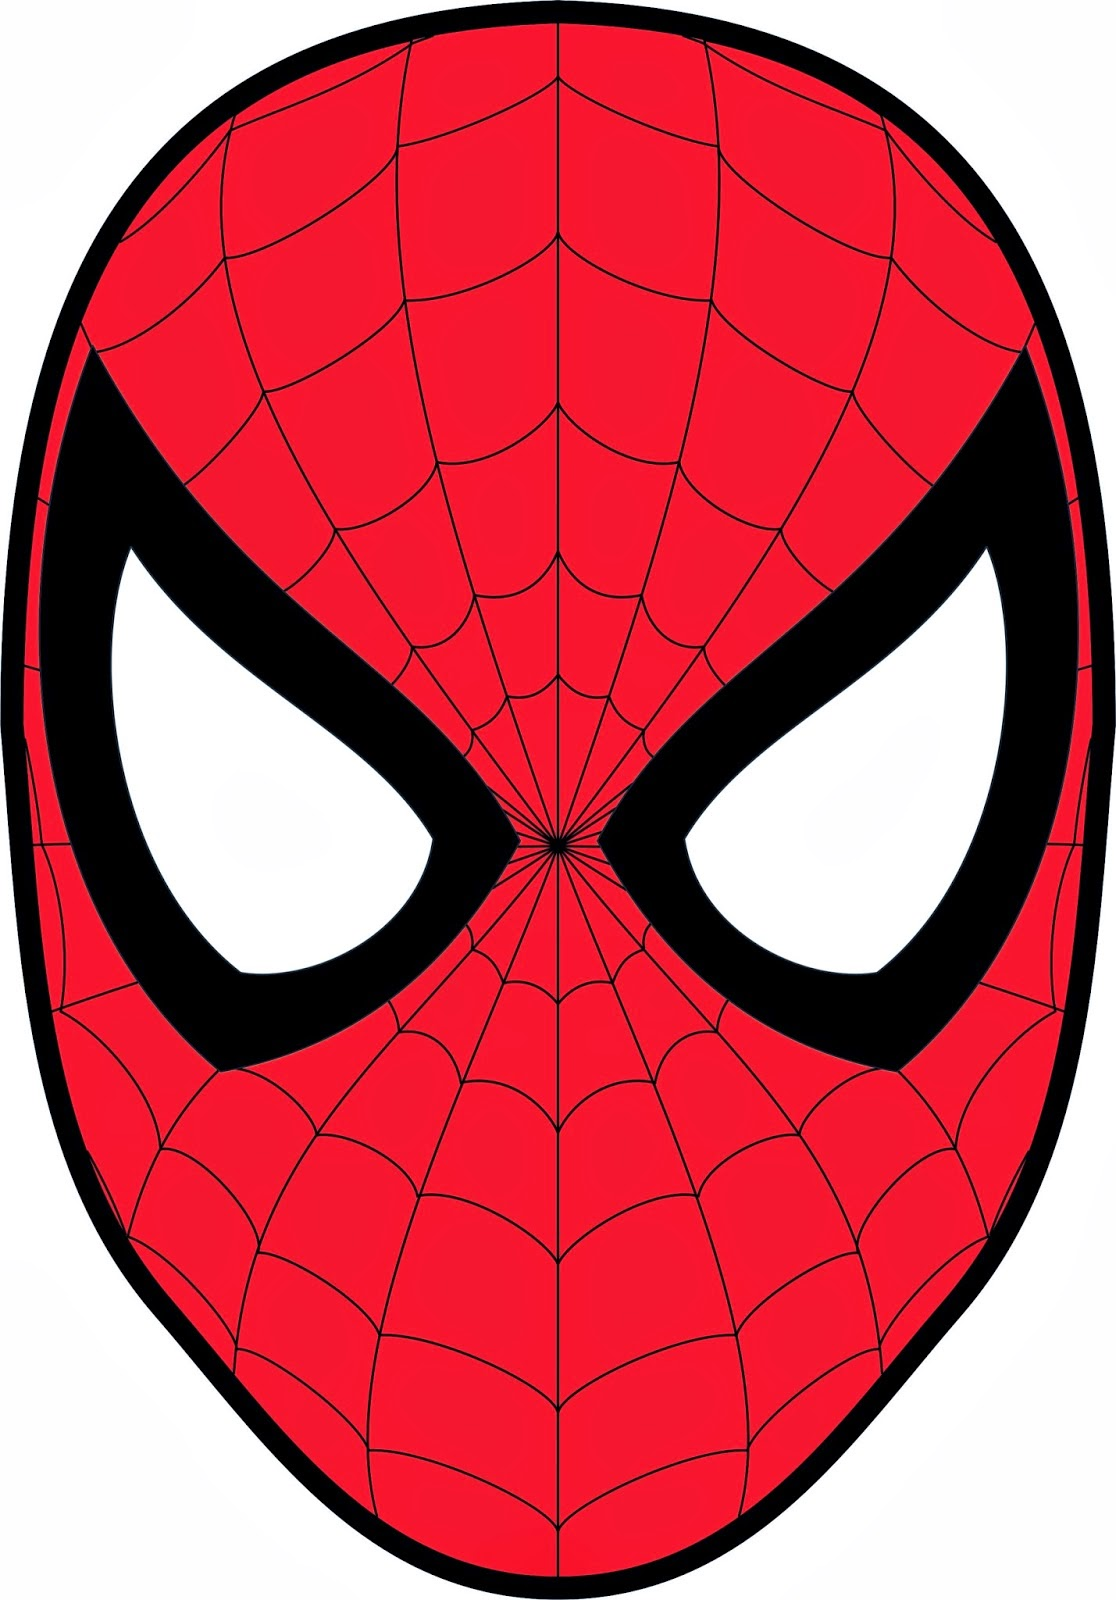 Spiderman: Free Printable Kit. - Oh My Fiesta! for Geeks